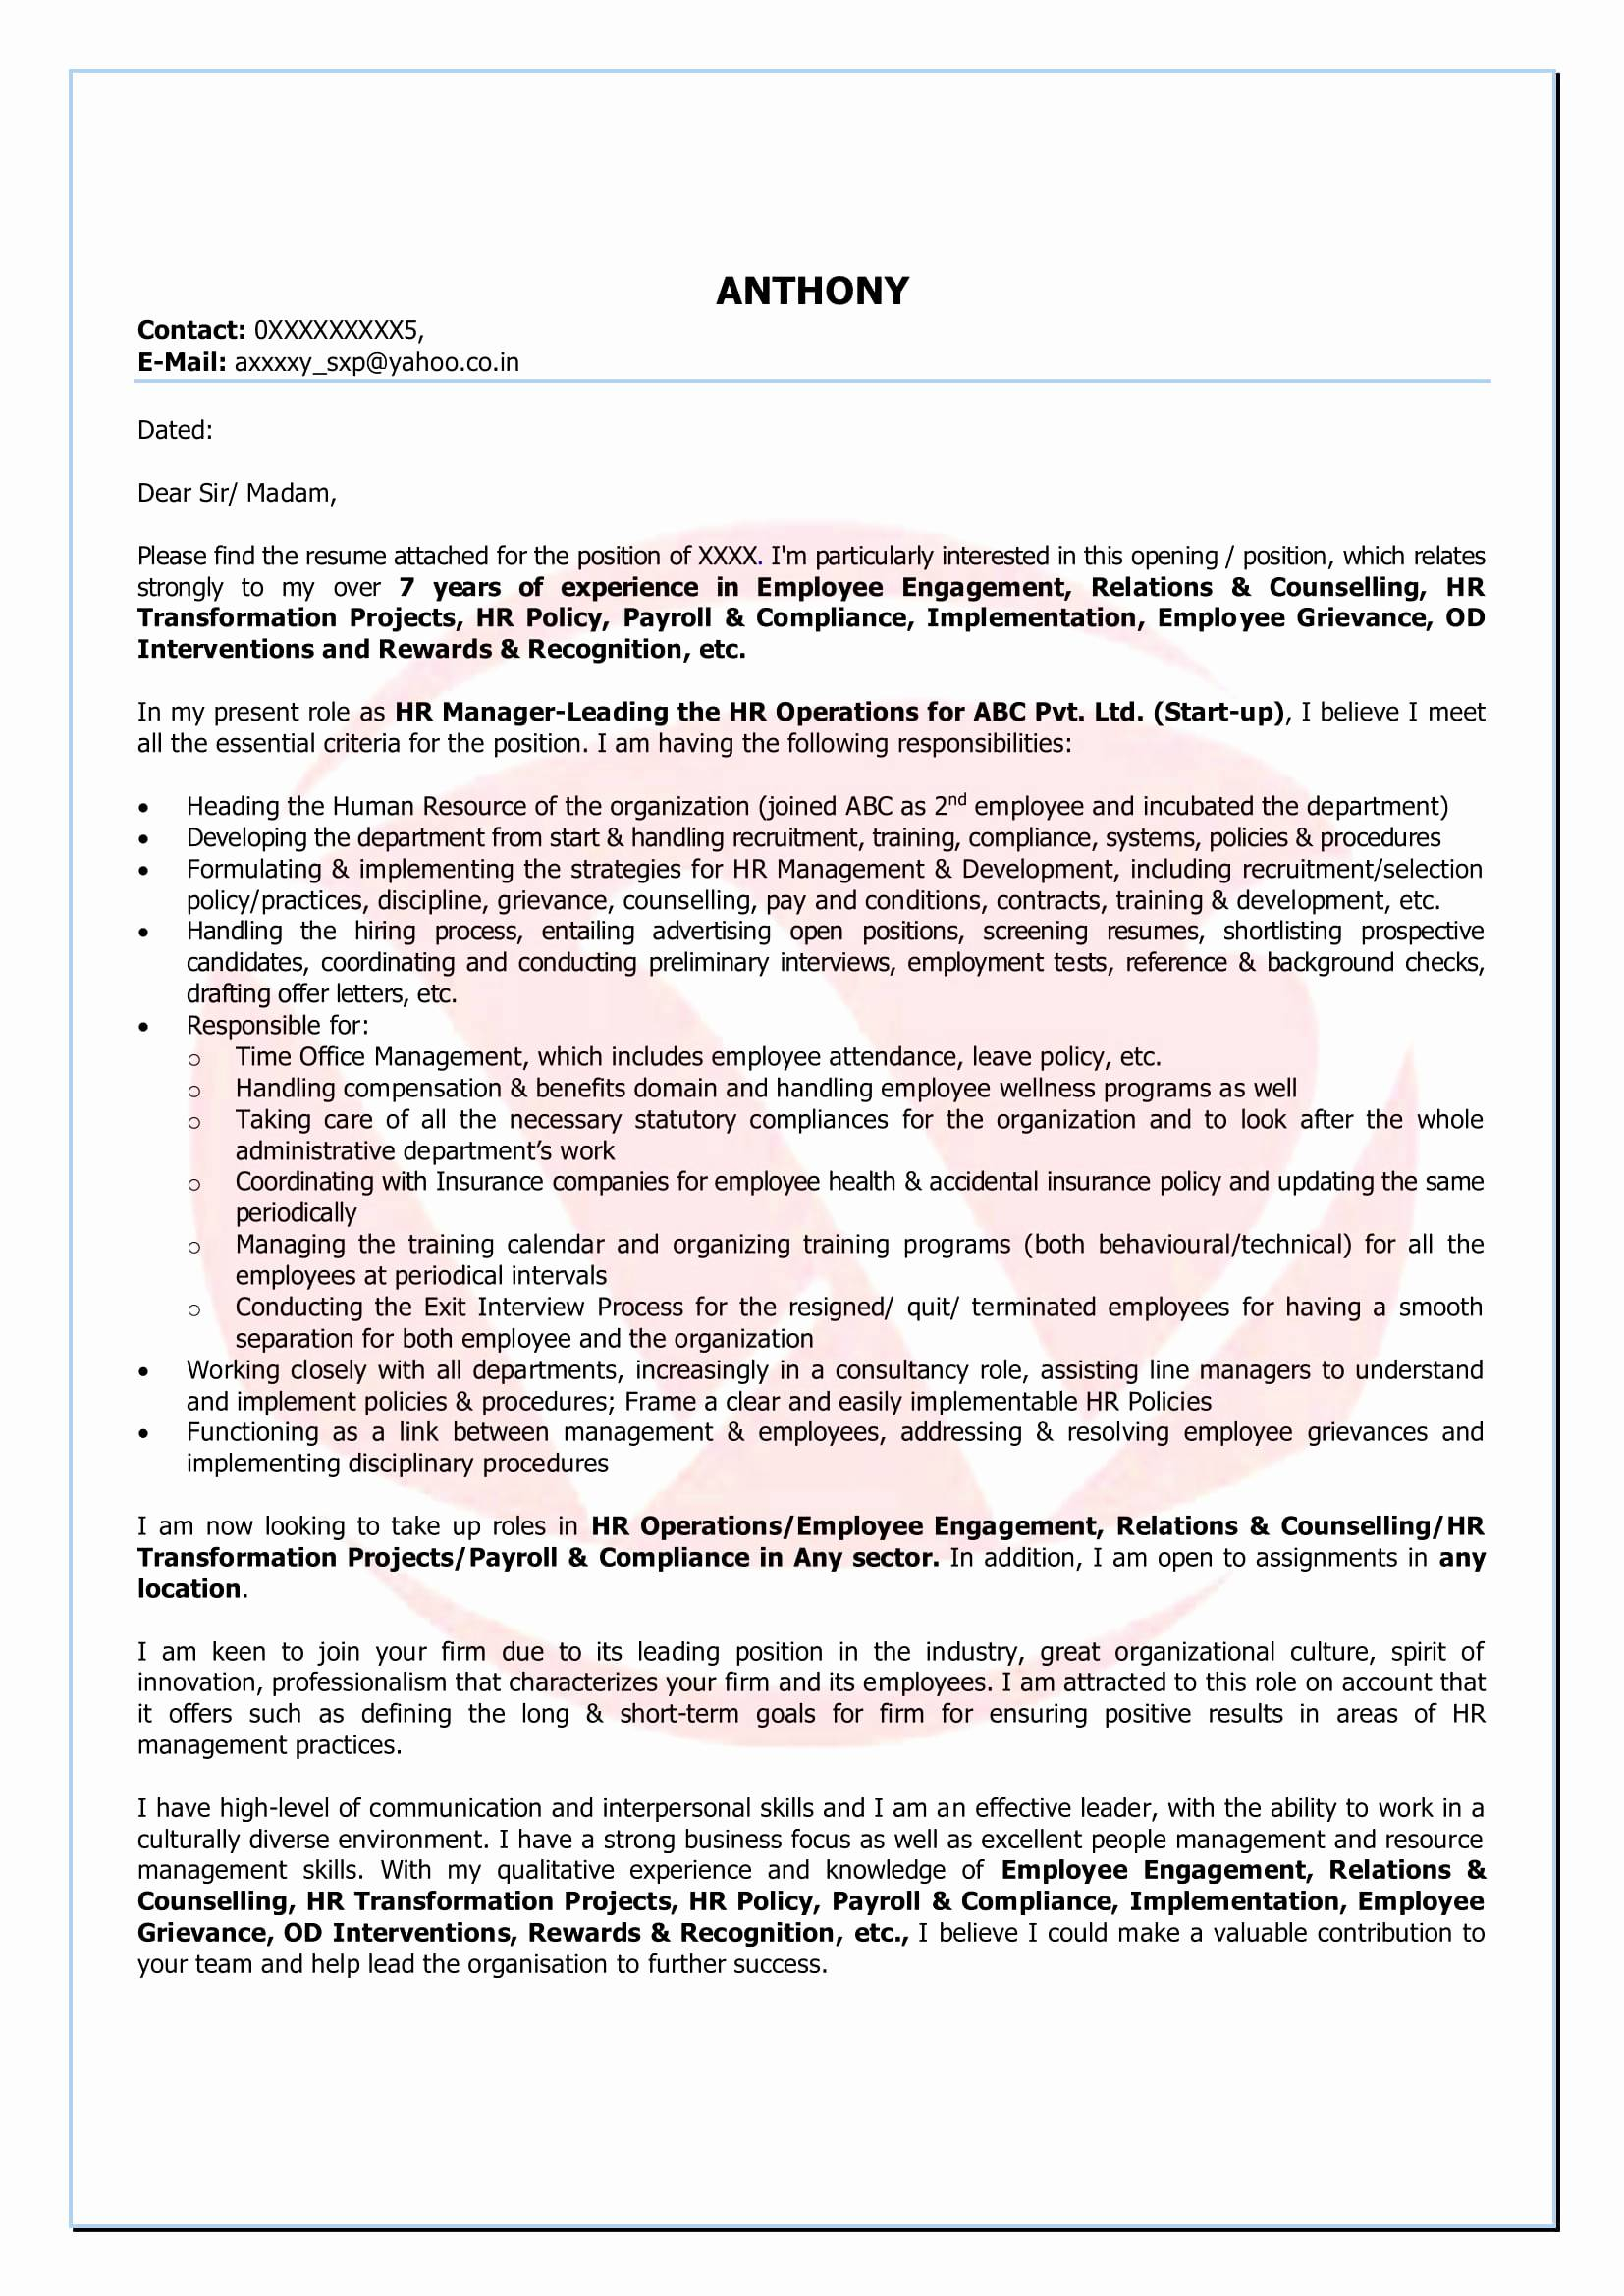 Startup Offer Letter Template - Employee Guidelines Template Unique Cover Letter Templates Word